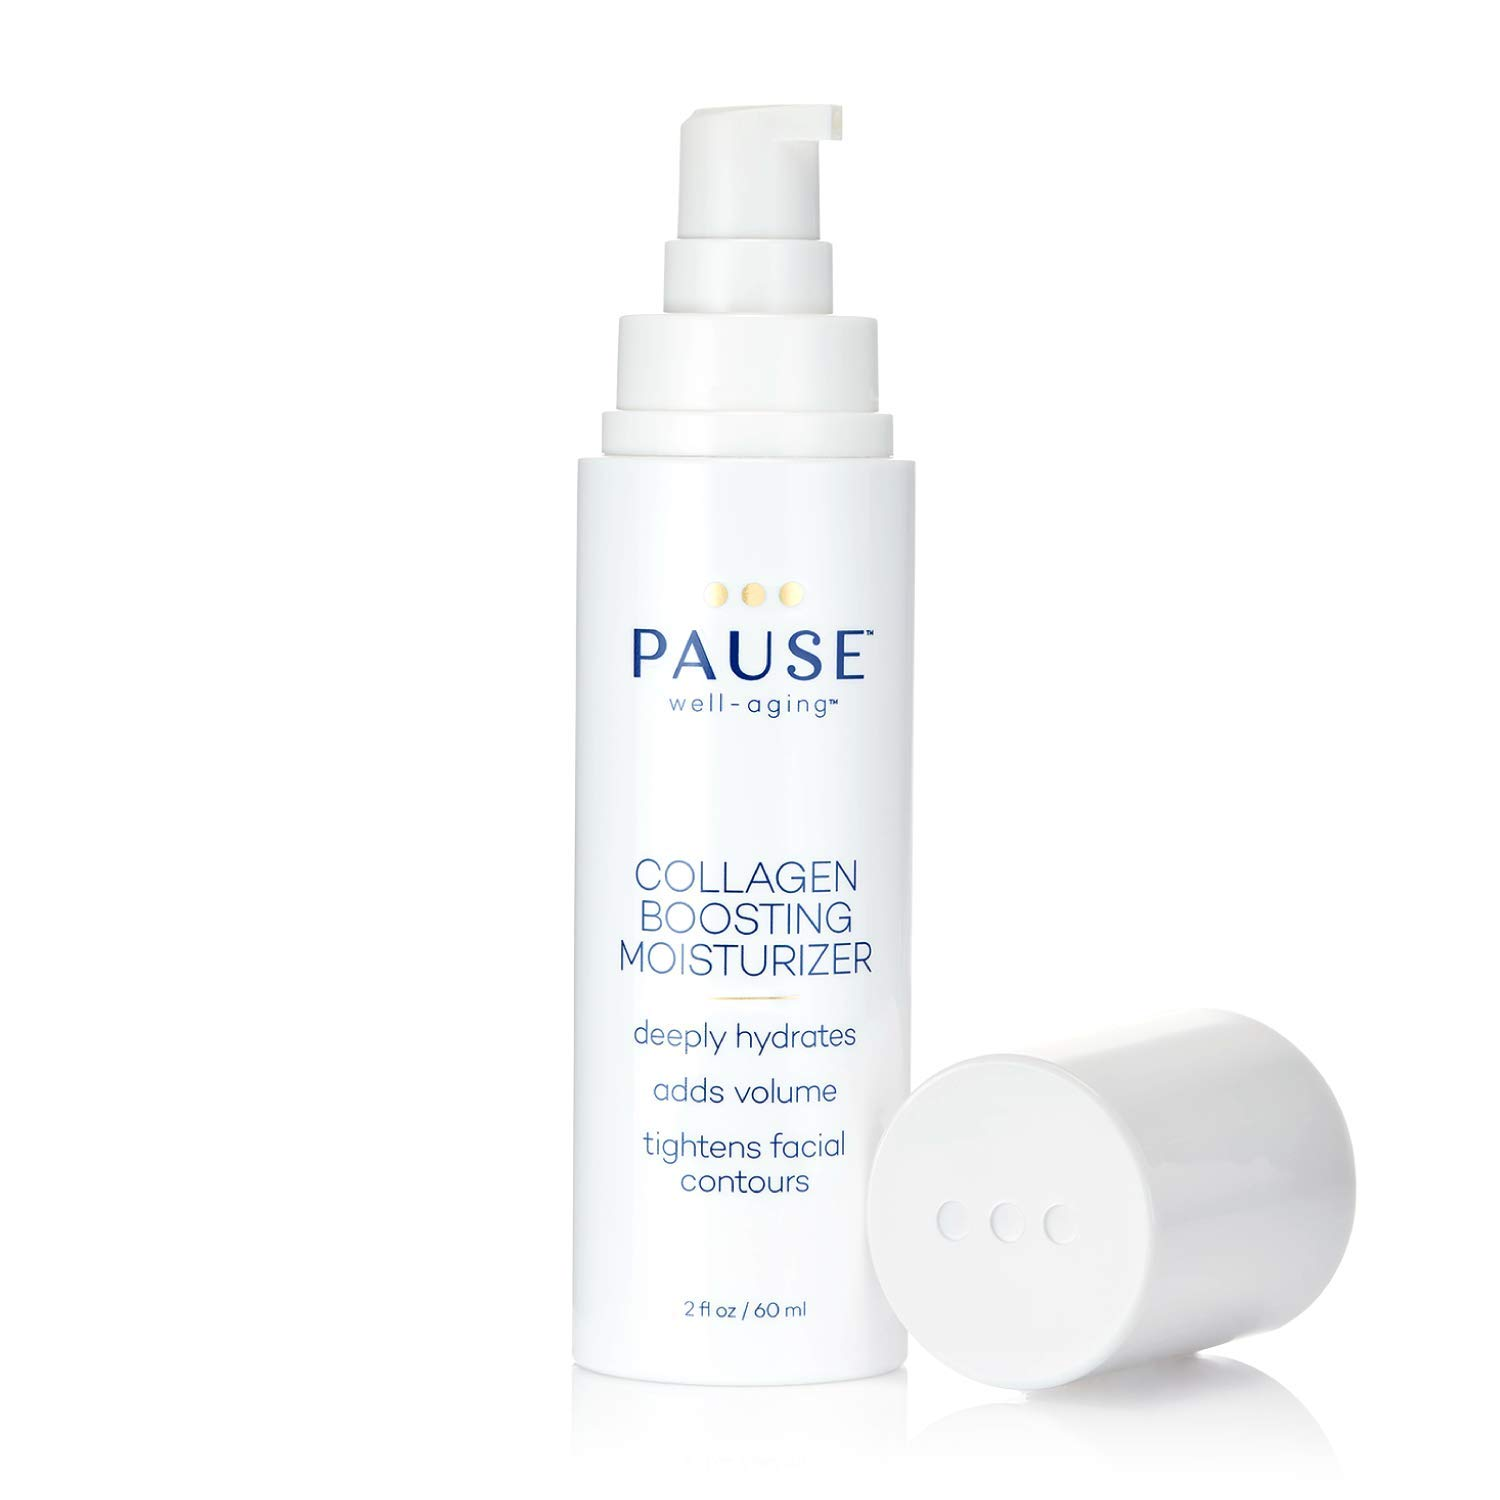 Pause Collagen Boosting Moisturizer